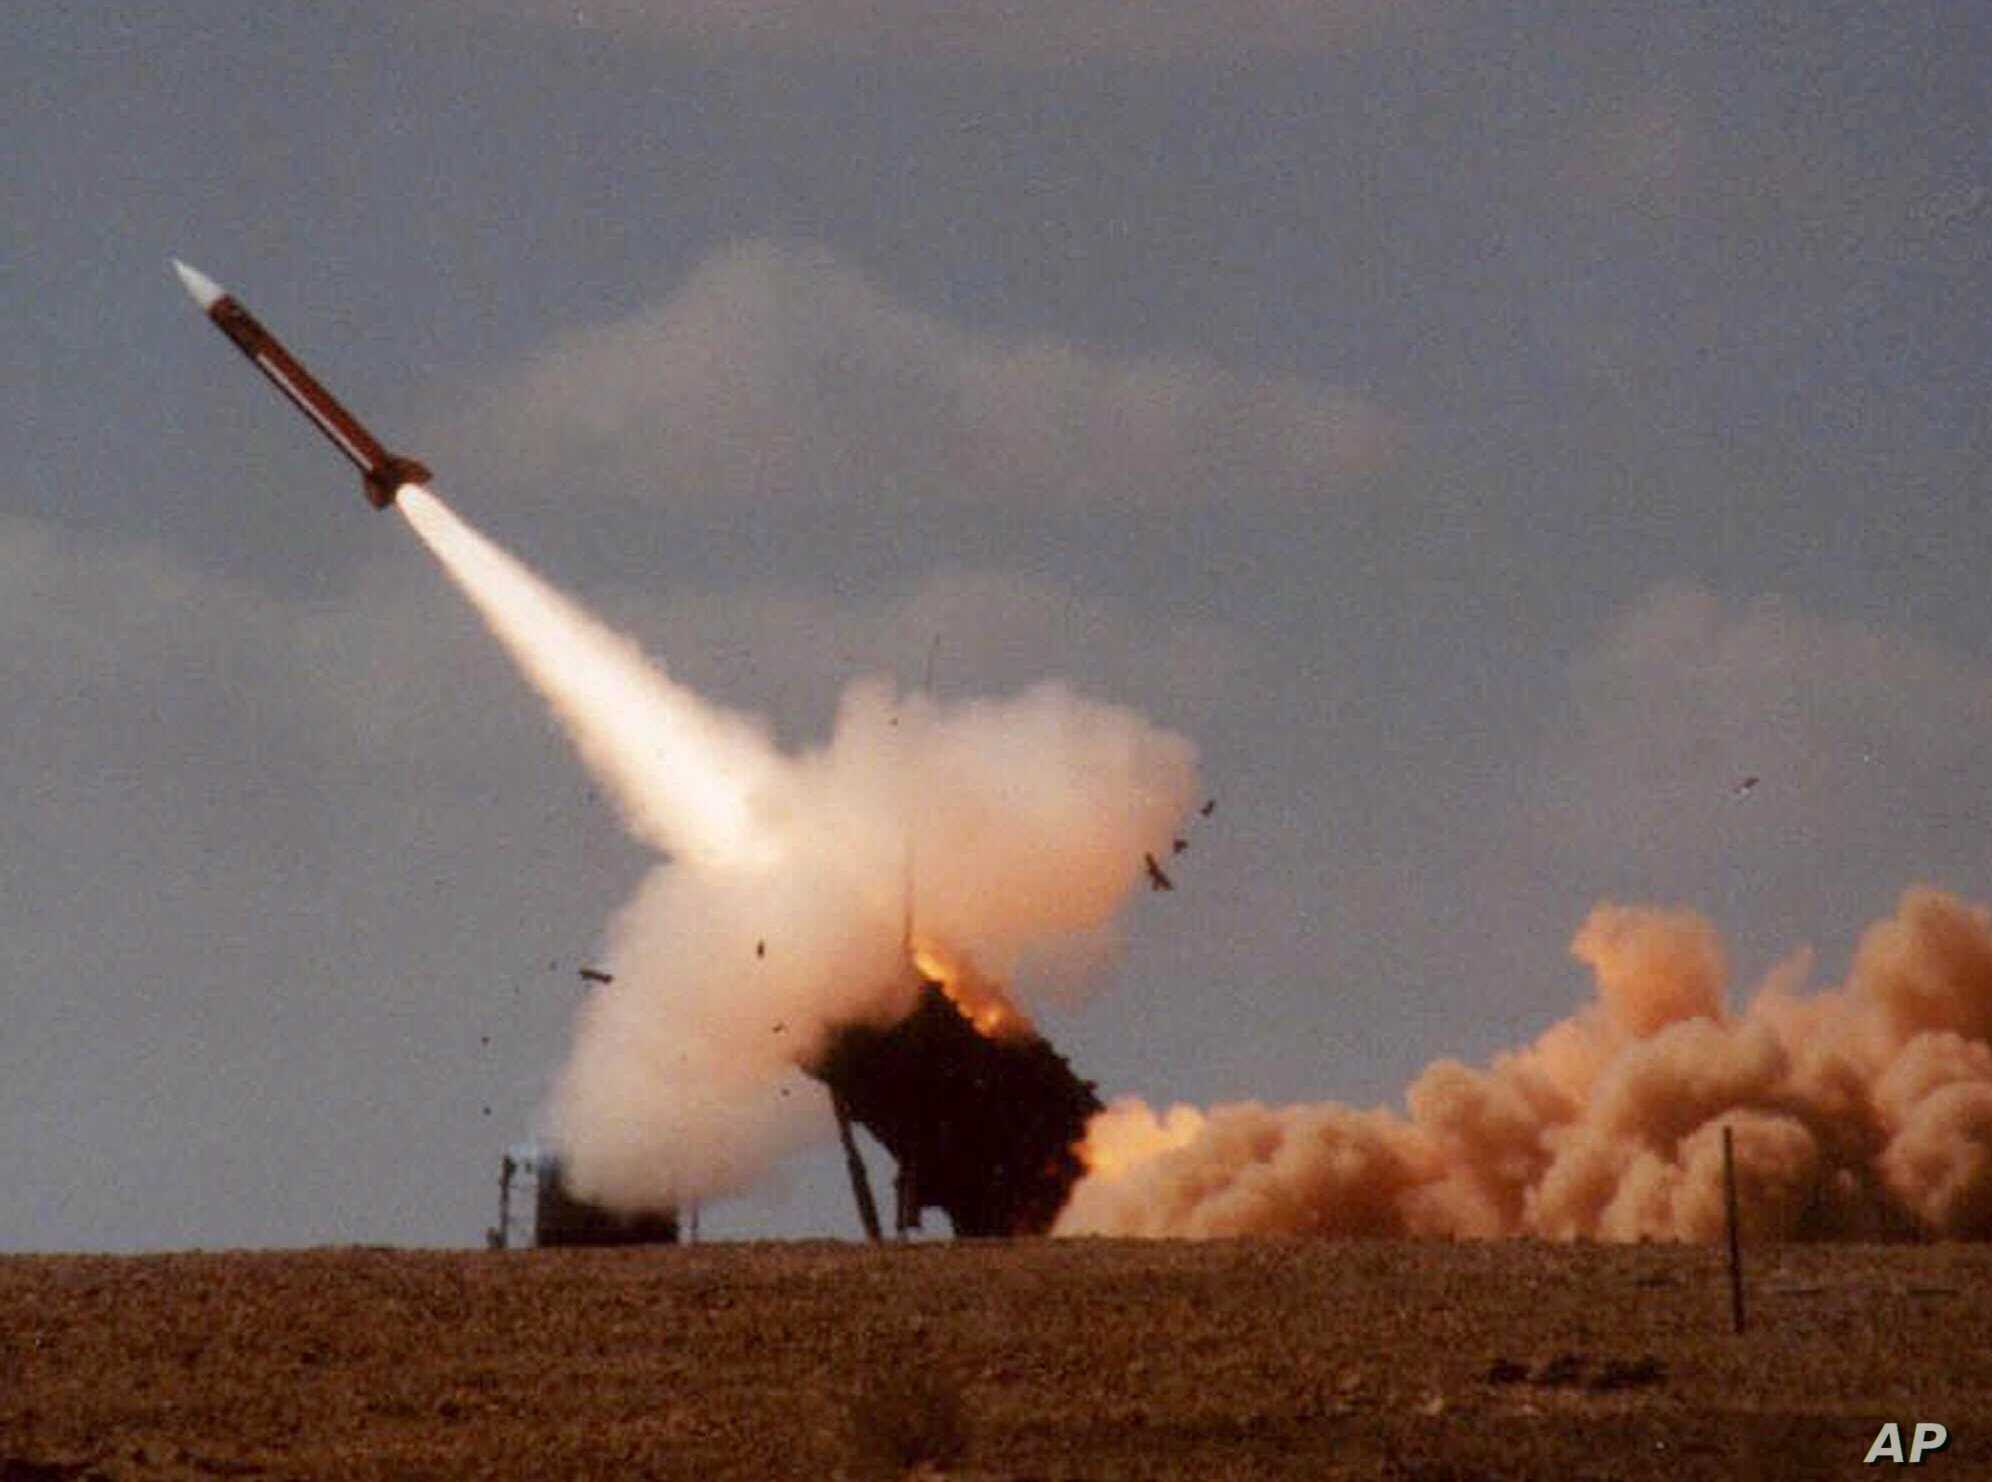 Poland Expects to Sign Patriot Missile Deal With US Firm